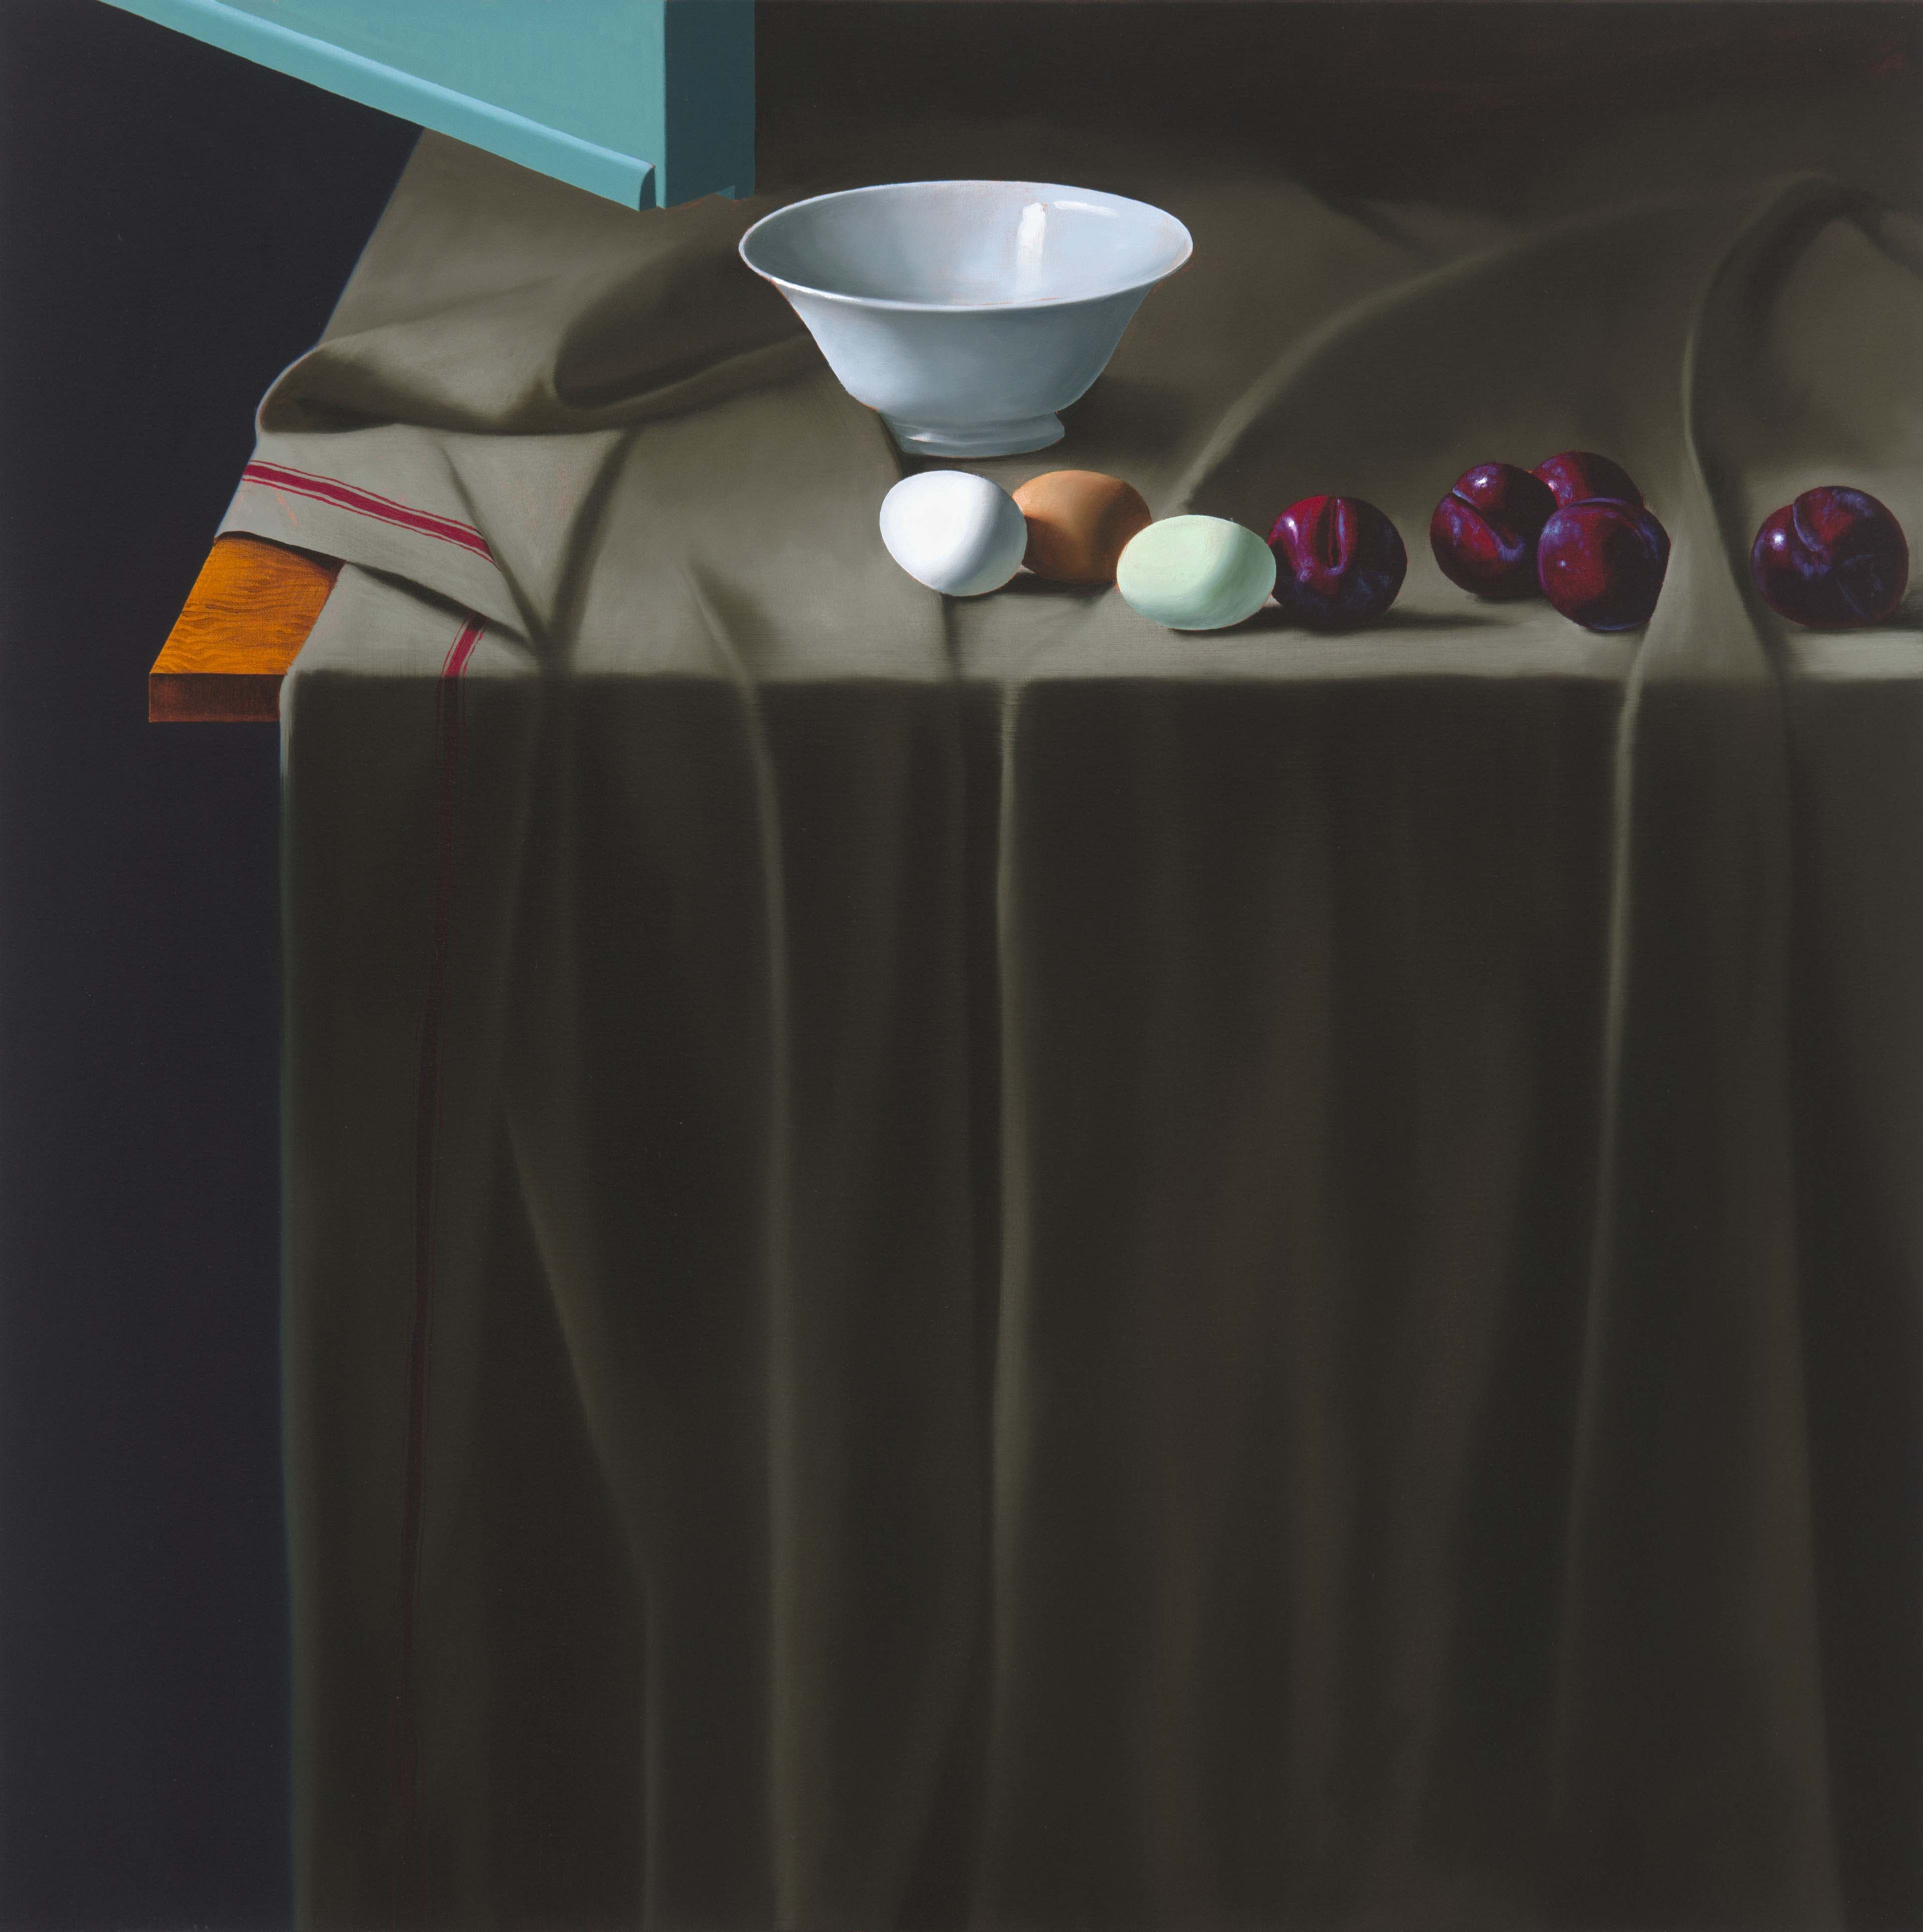 Still Life with Eggs, Plums, and Bowl